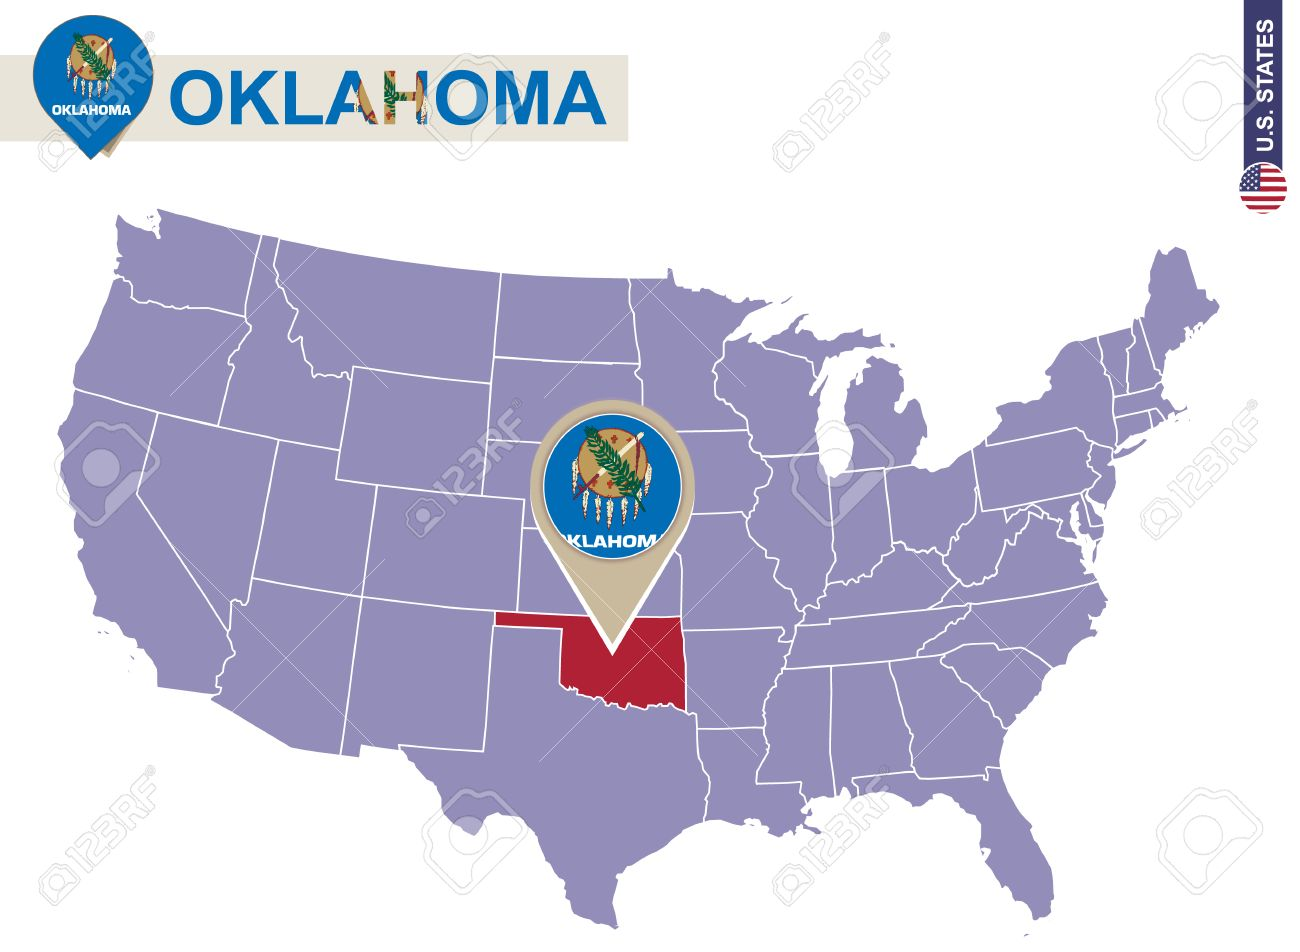 Oklahoma State On USA Map Oklahoma Flag And Map US States - Oklahoma in us map